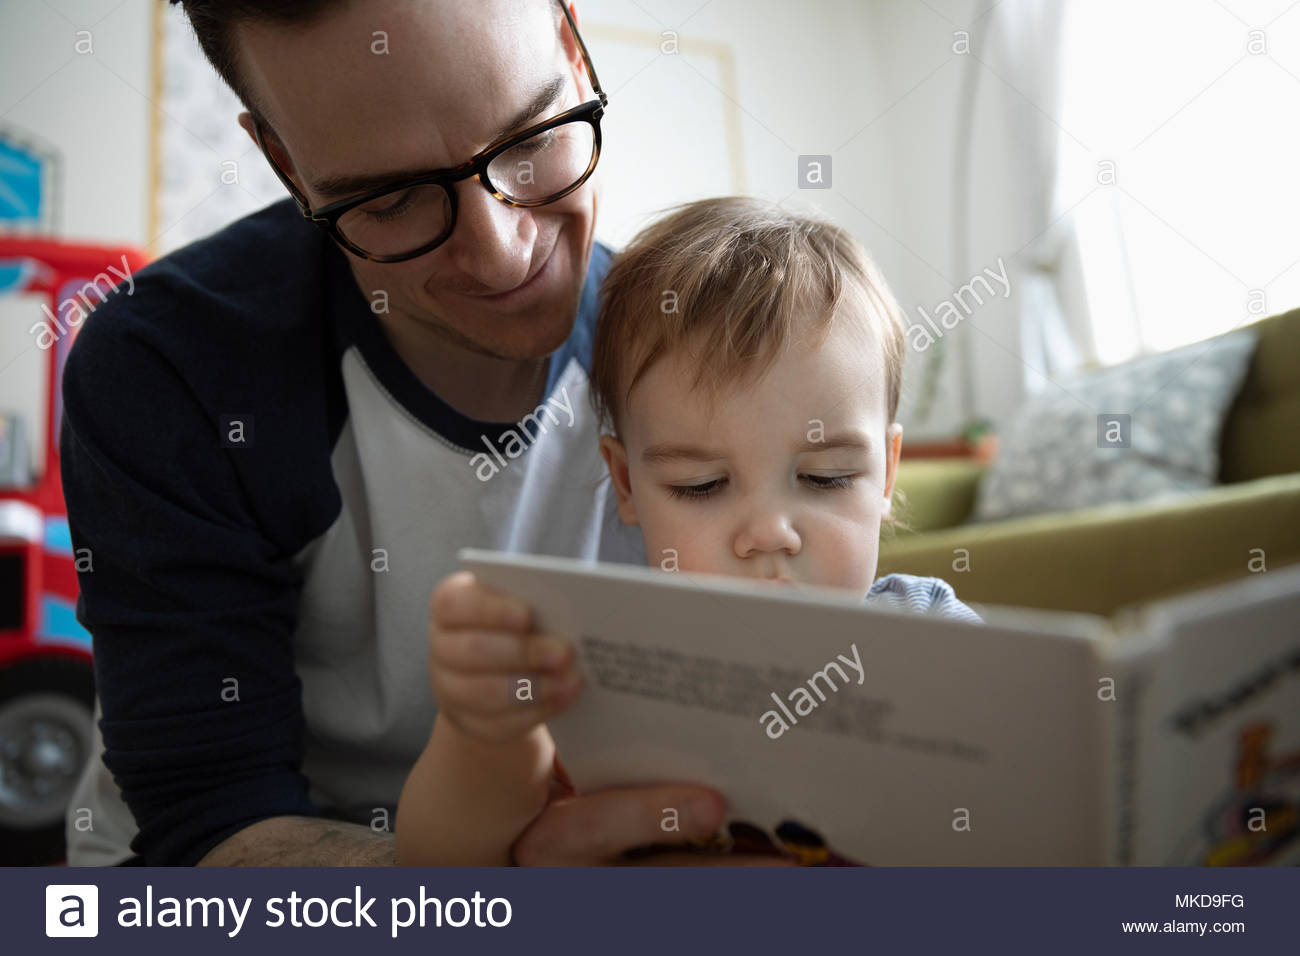 Father reading story book to baby son - Stock Image